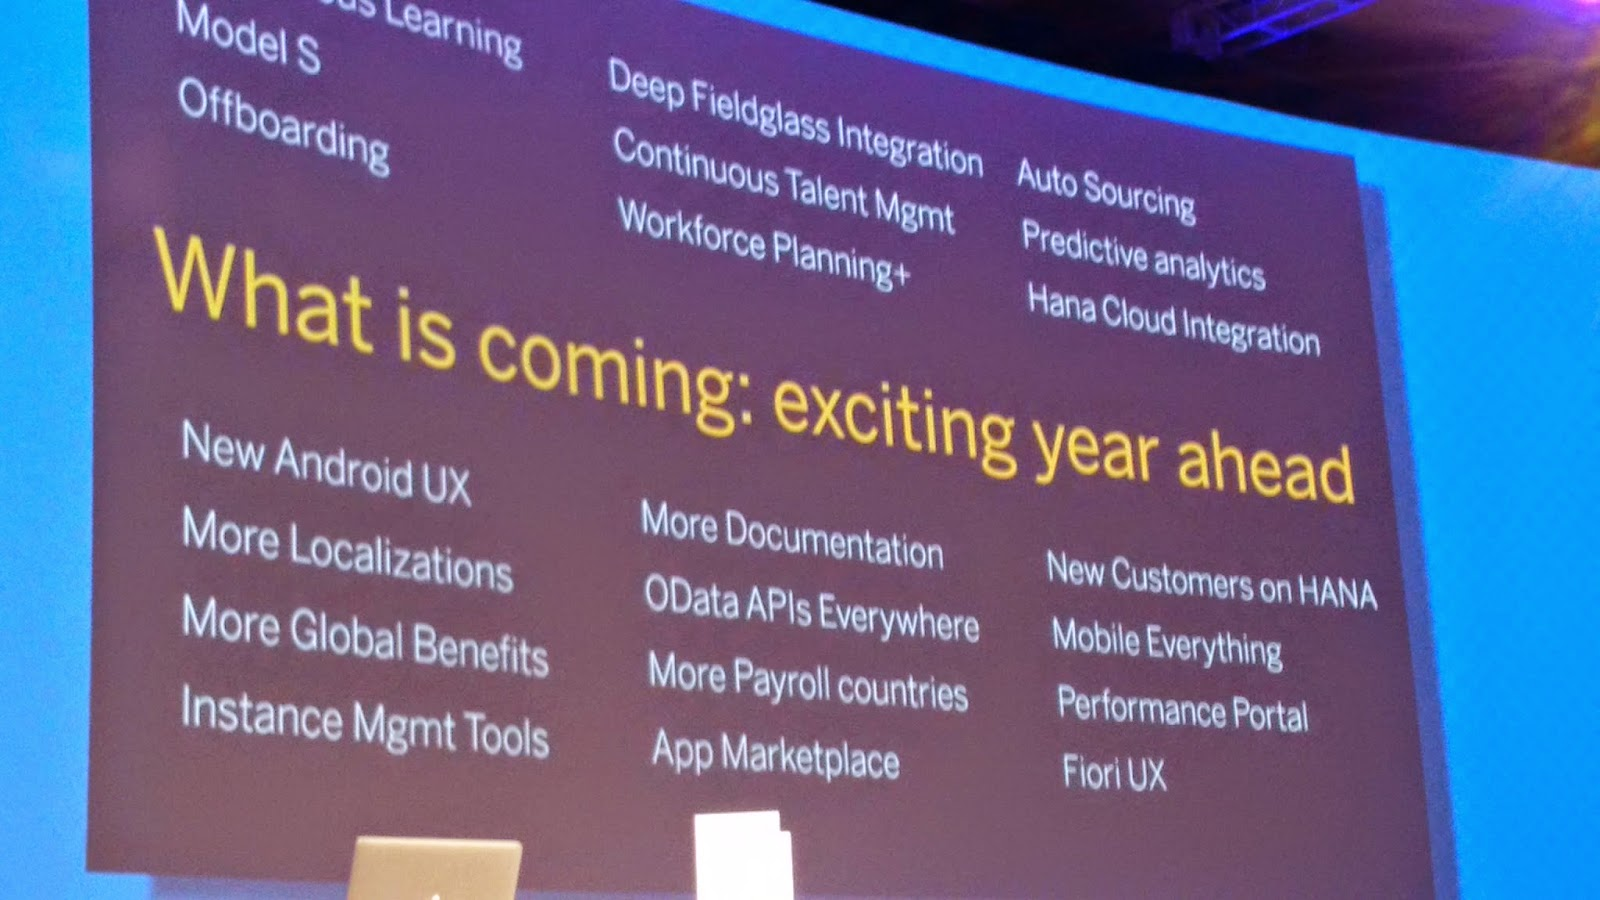 Event Report - SAP SuccessFactors picks up speed - but there remains